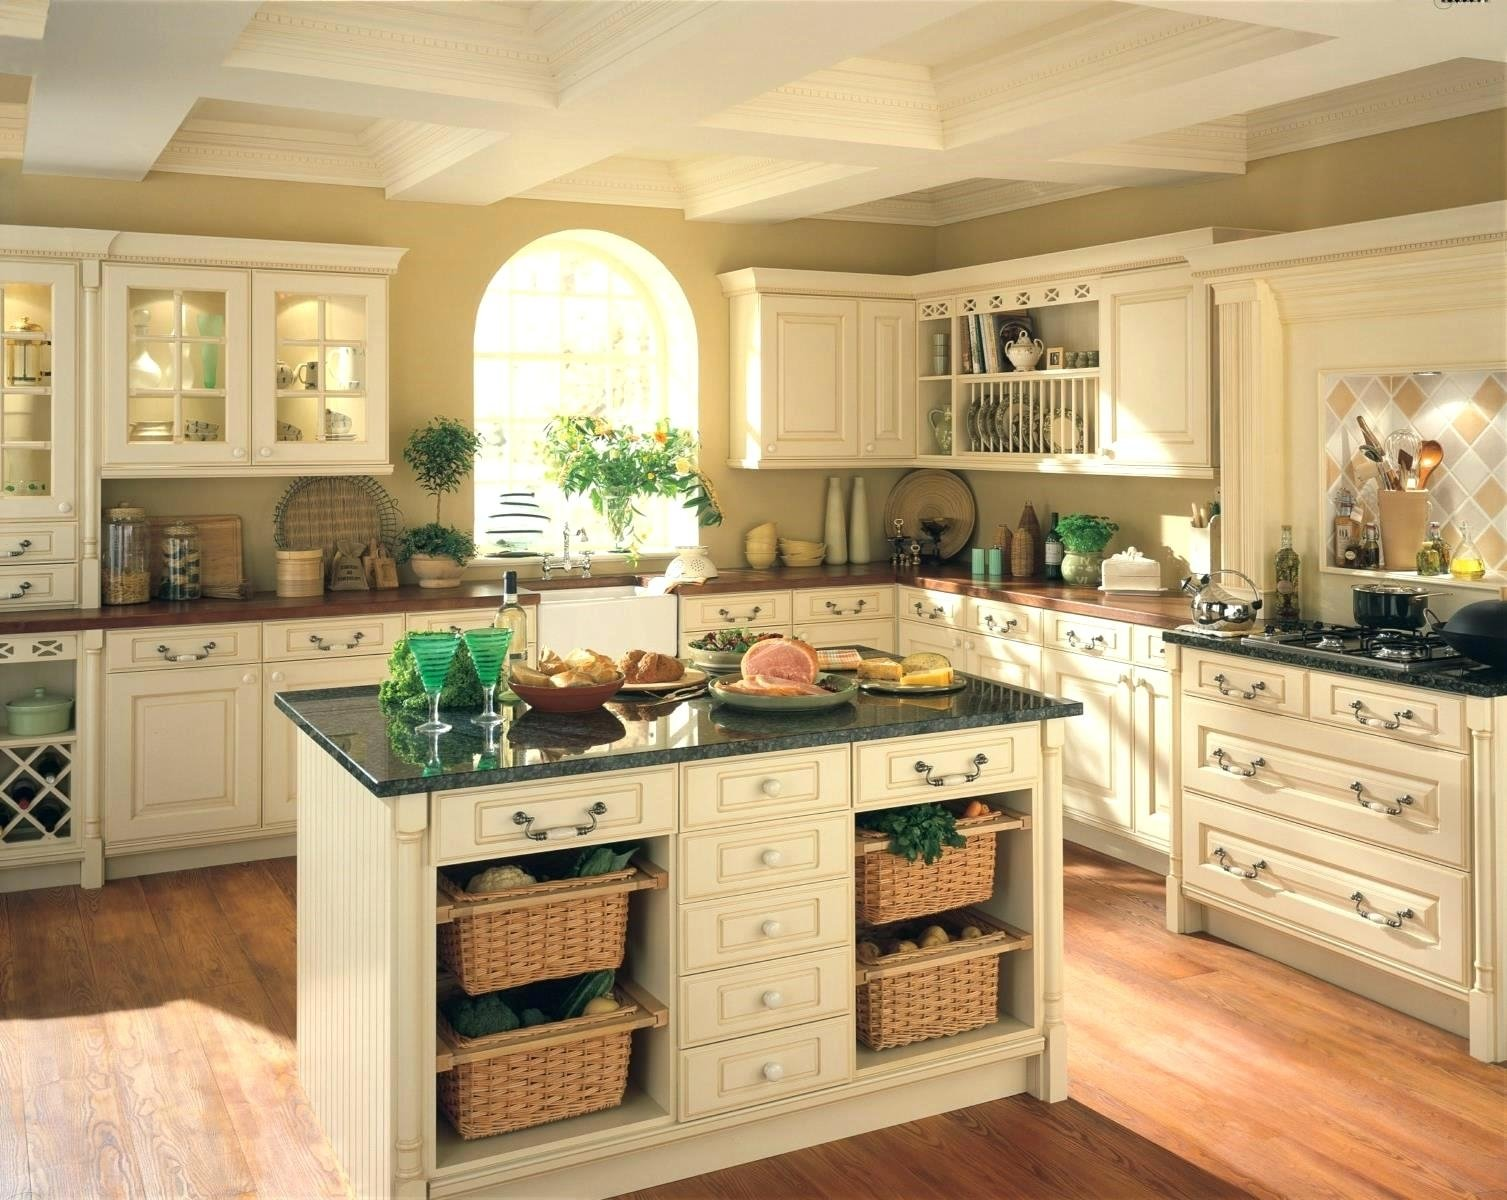 10 Most Popular Country Kitchen Decorating Ideas On A Budget country kitchen decor ideas pinterest perfect new simple cheap 2020